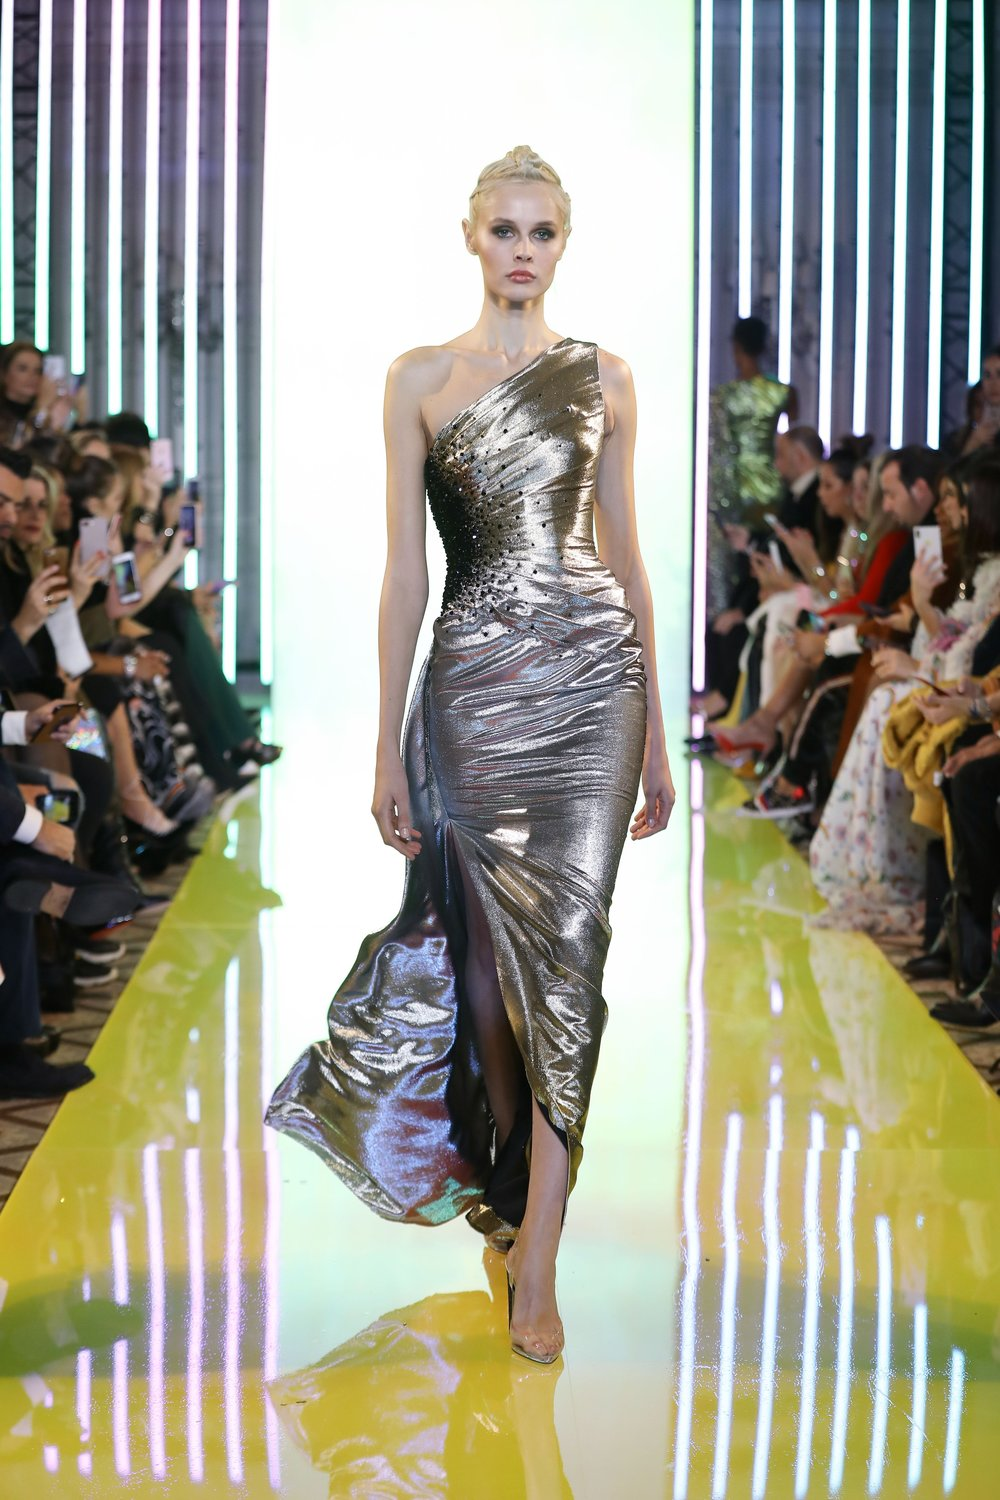 SS19-31- Gold And Silver Metallic Ombré One-Shoulder Lurex Draped Gown Featuring Embellishements Of Black Beads On The Side.jpg